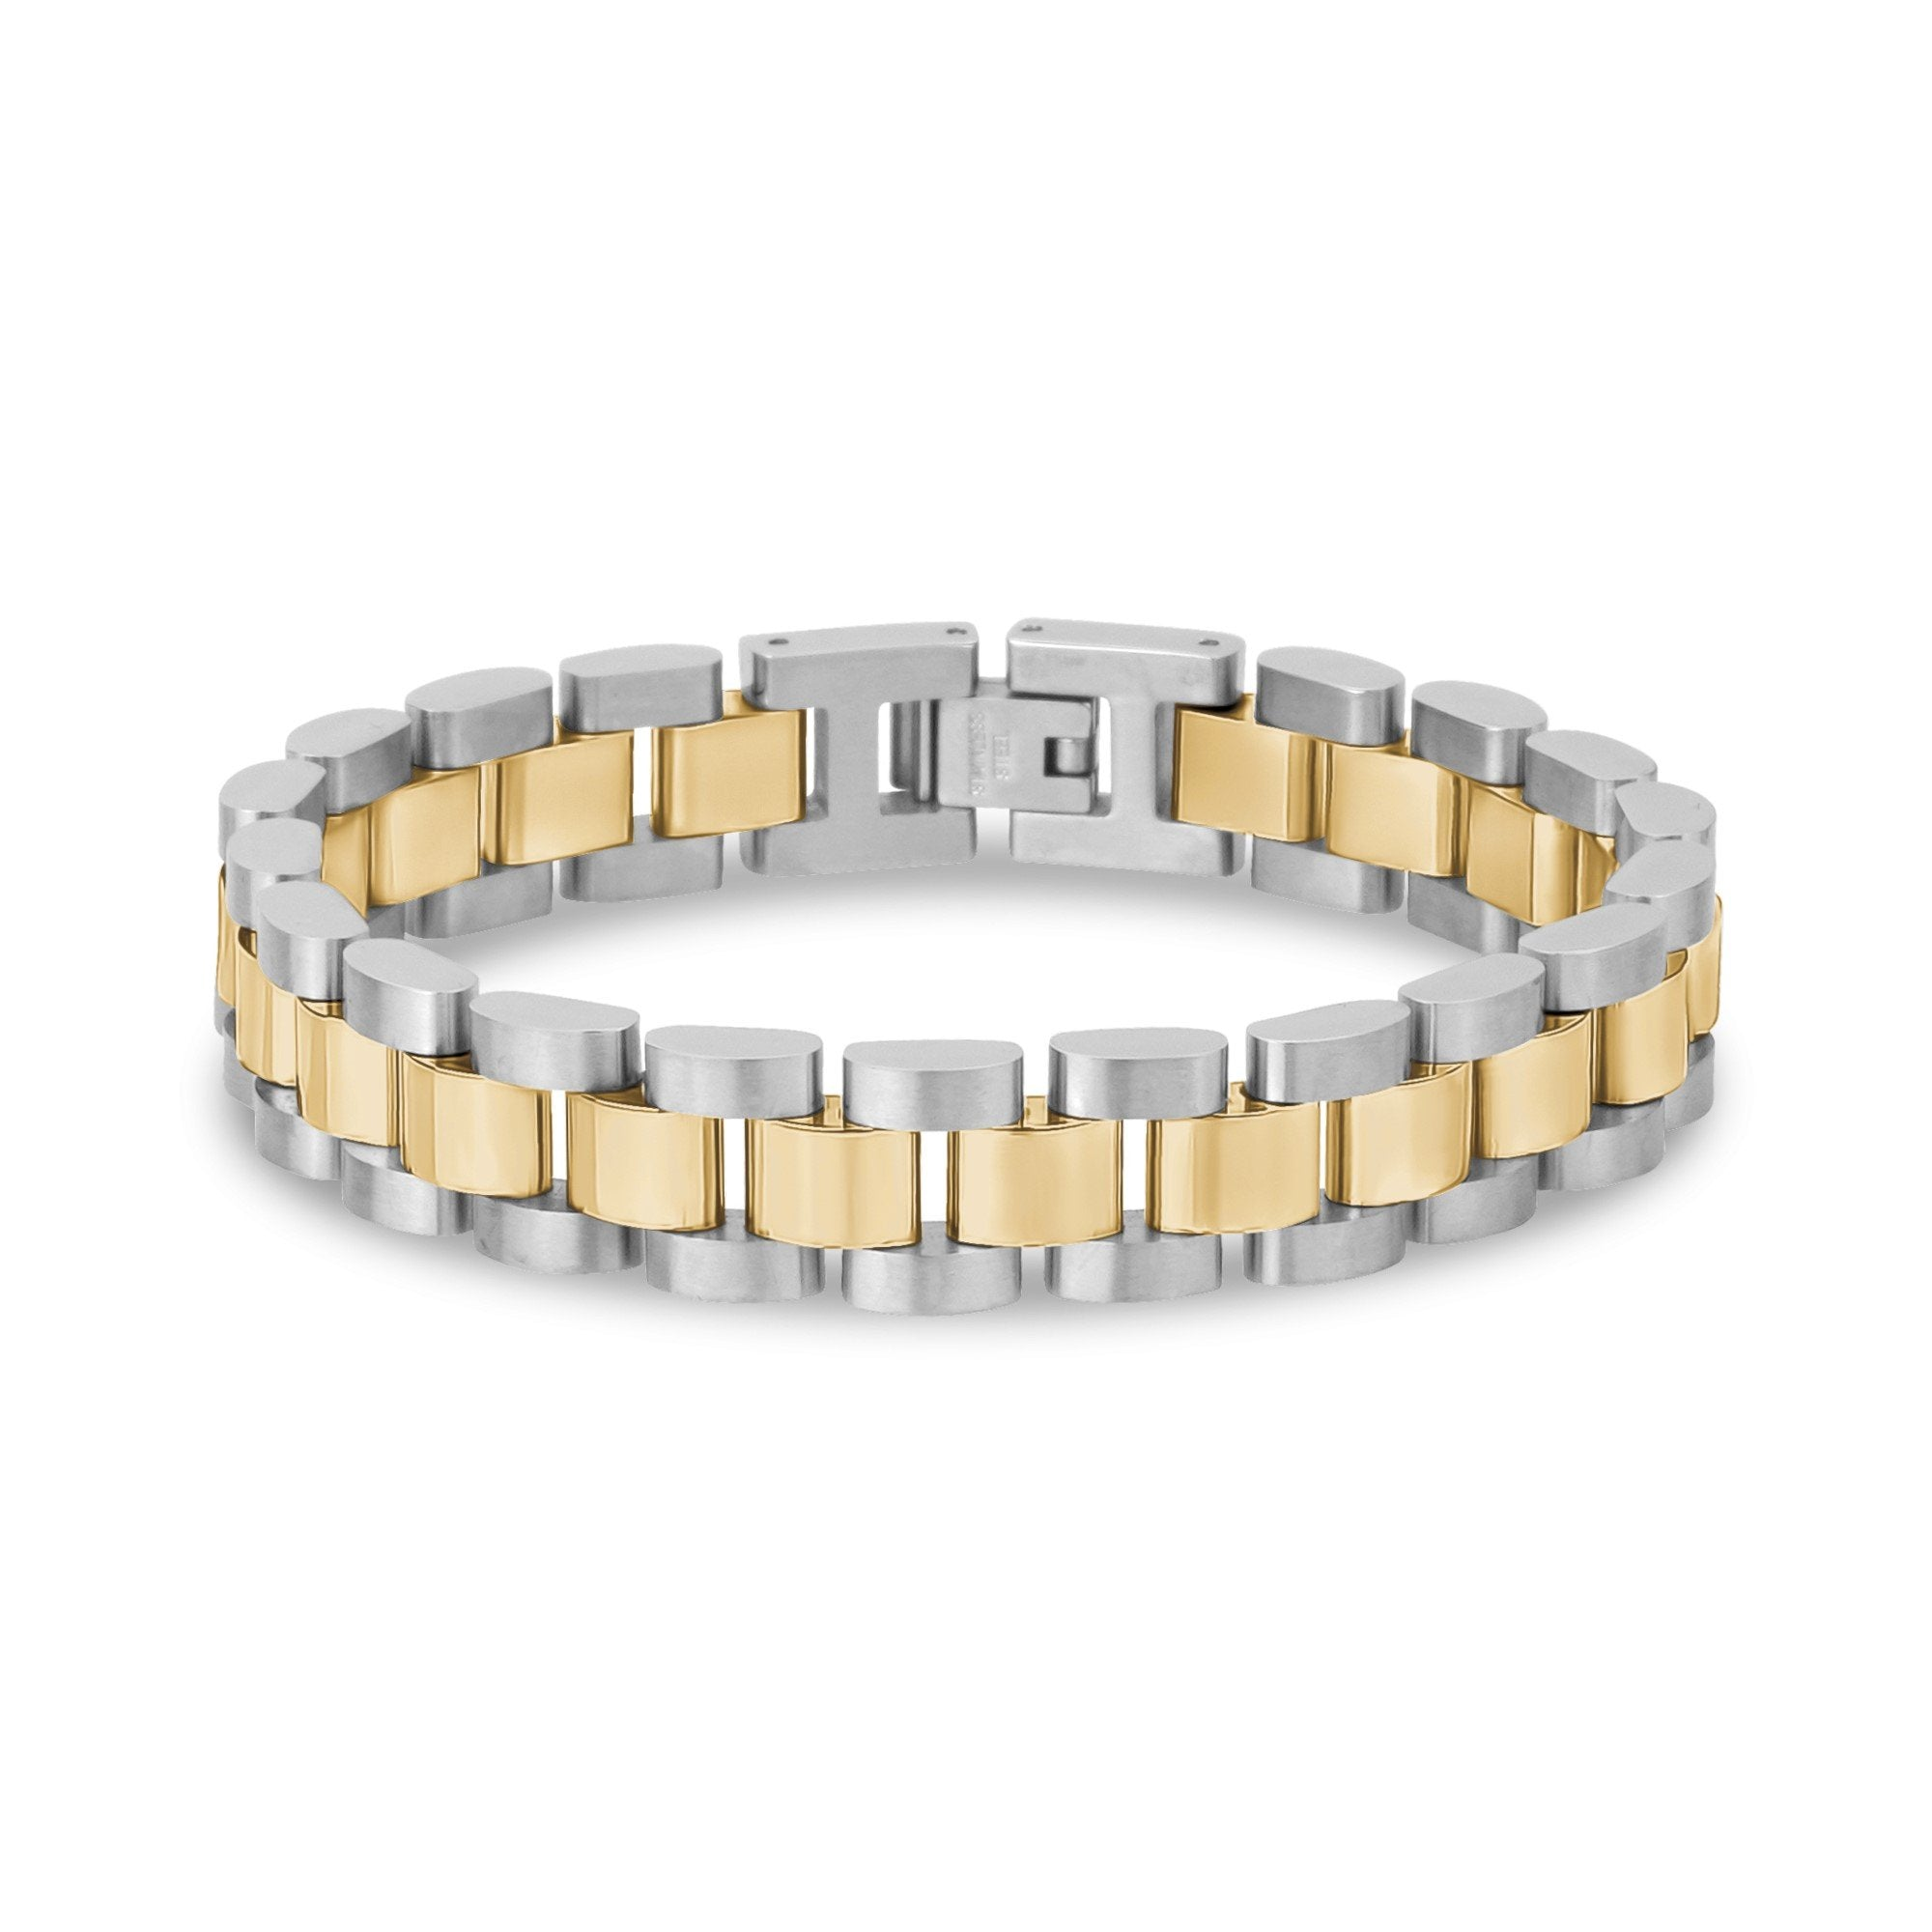 Mens Steel Bracelets - Two Tone Stainless Steel Watch Link Bracelet